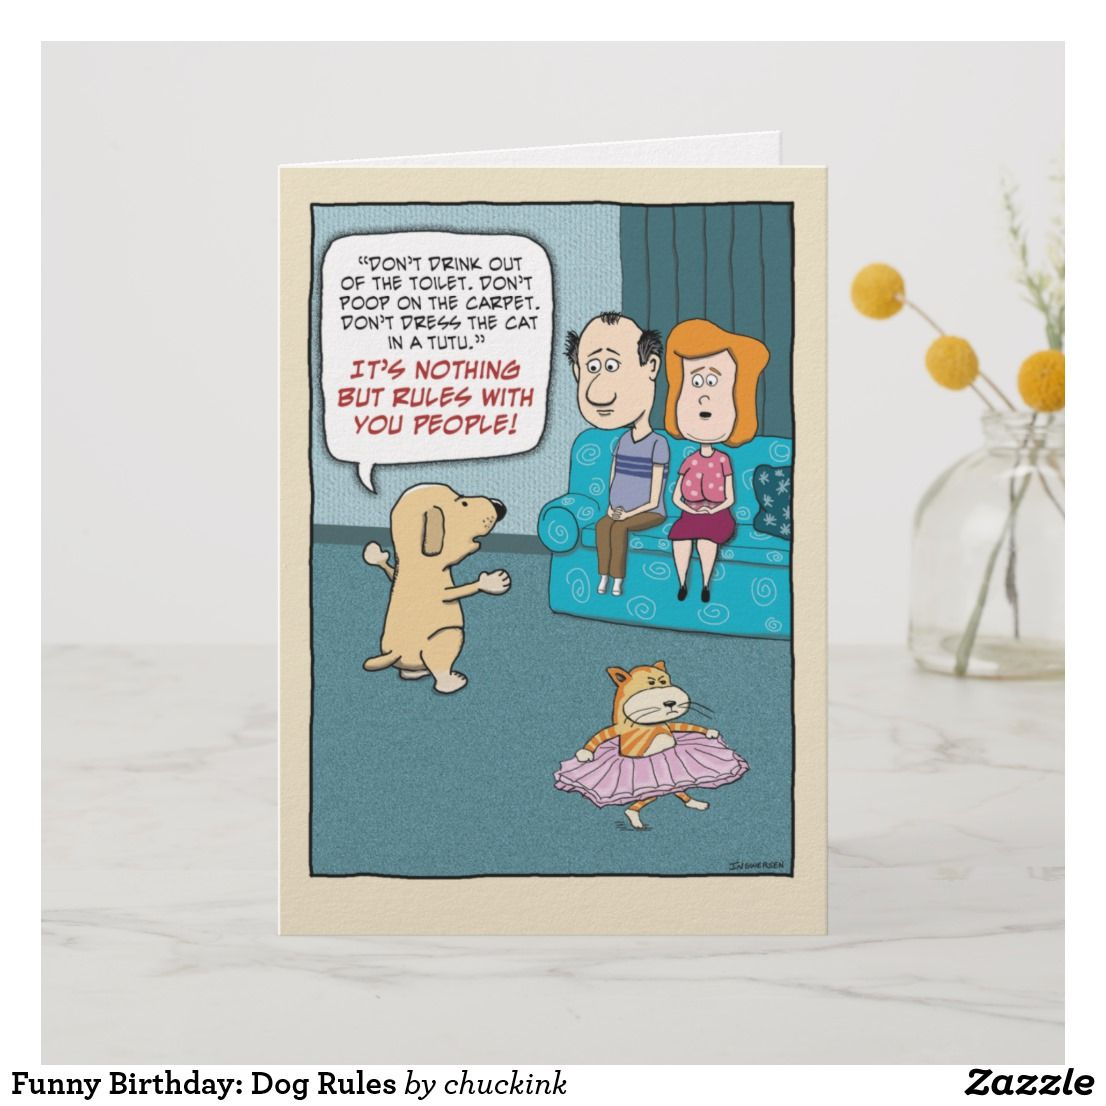 Funny Birthday Dog Rules Card Cardsfunny Cardsgreeting Cardshappy Cardbirthday Greeting Cardsonline Cards